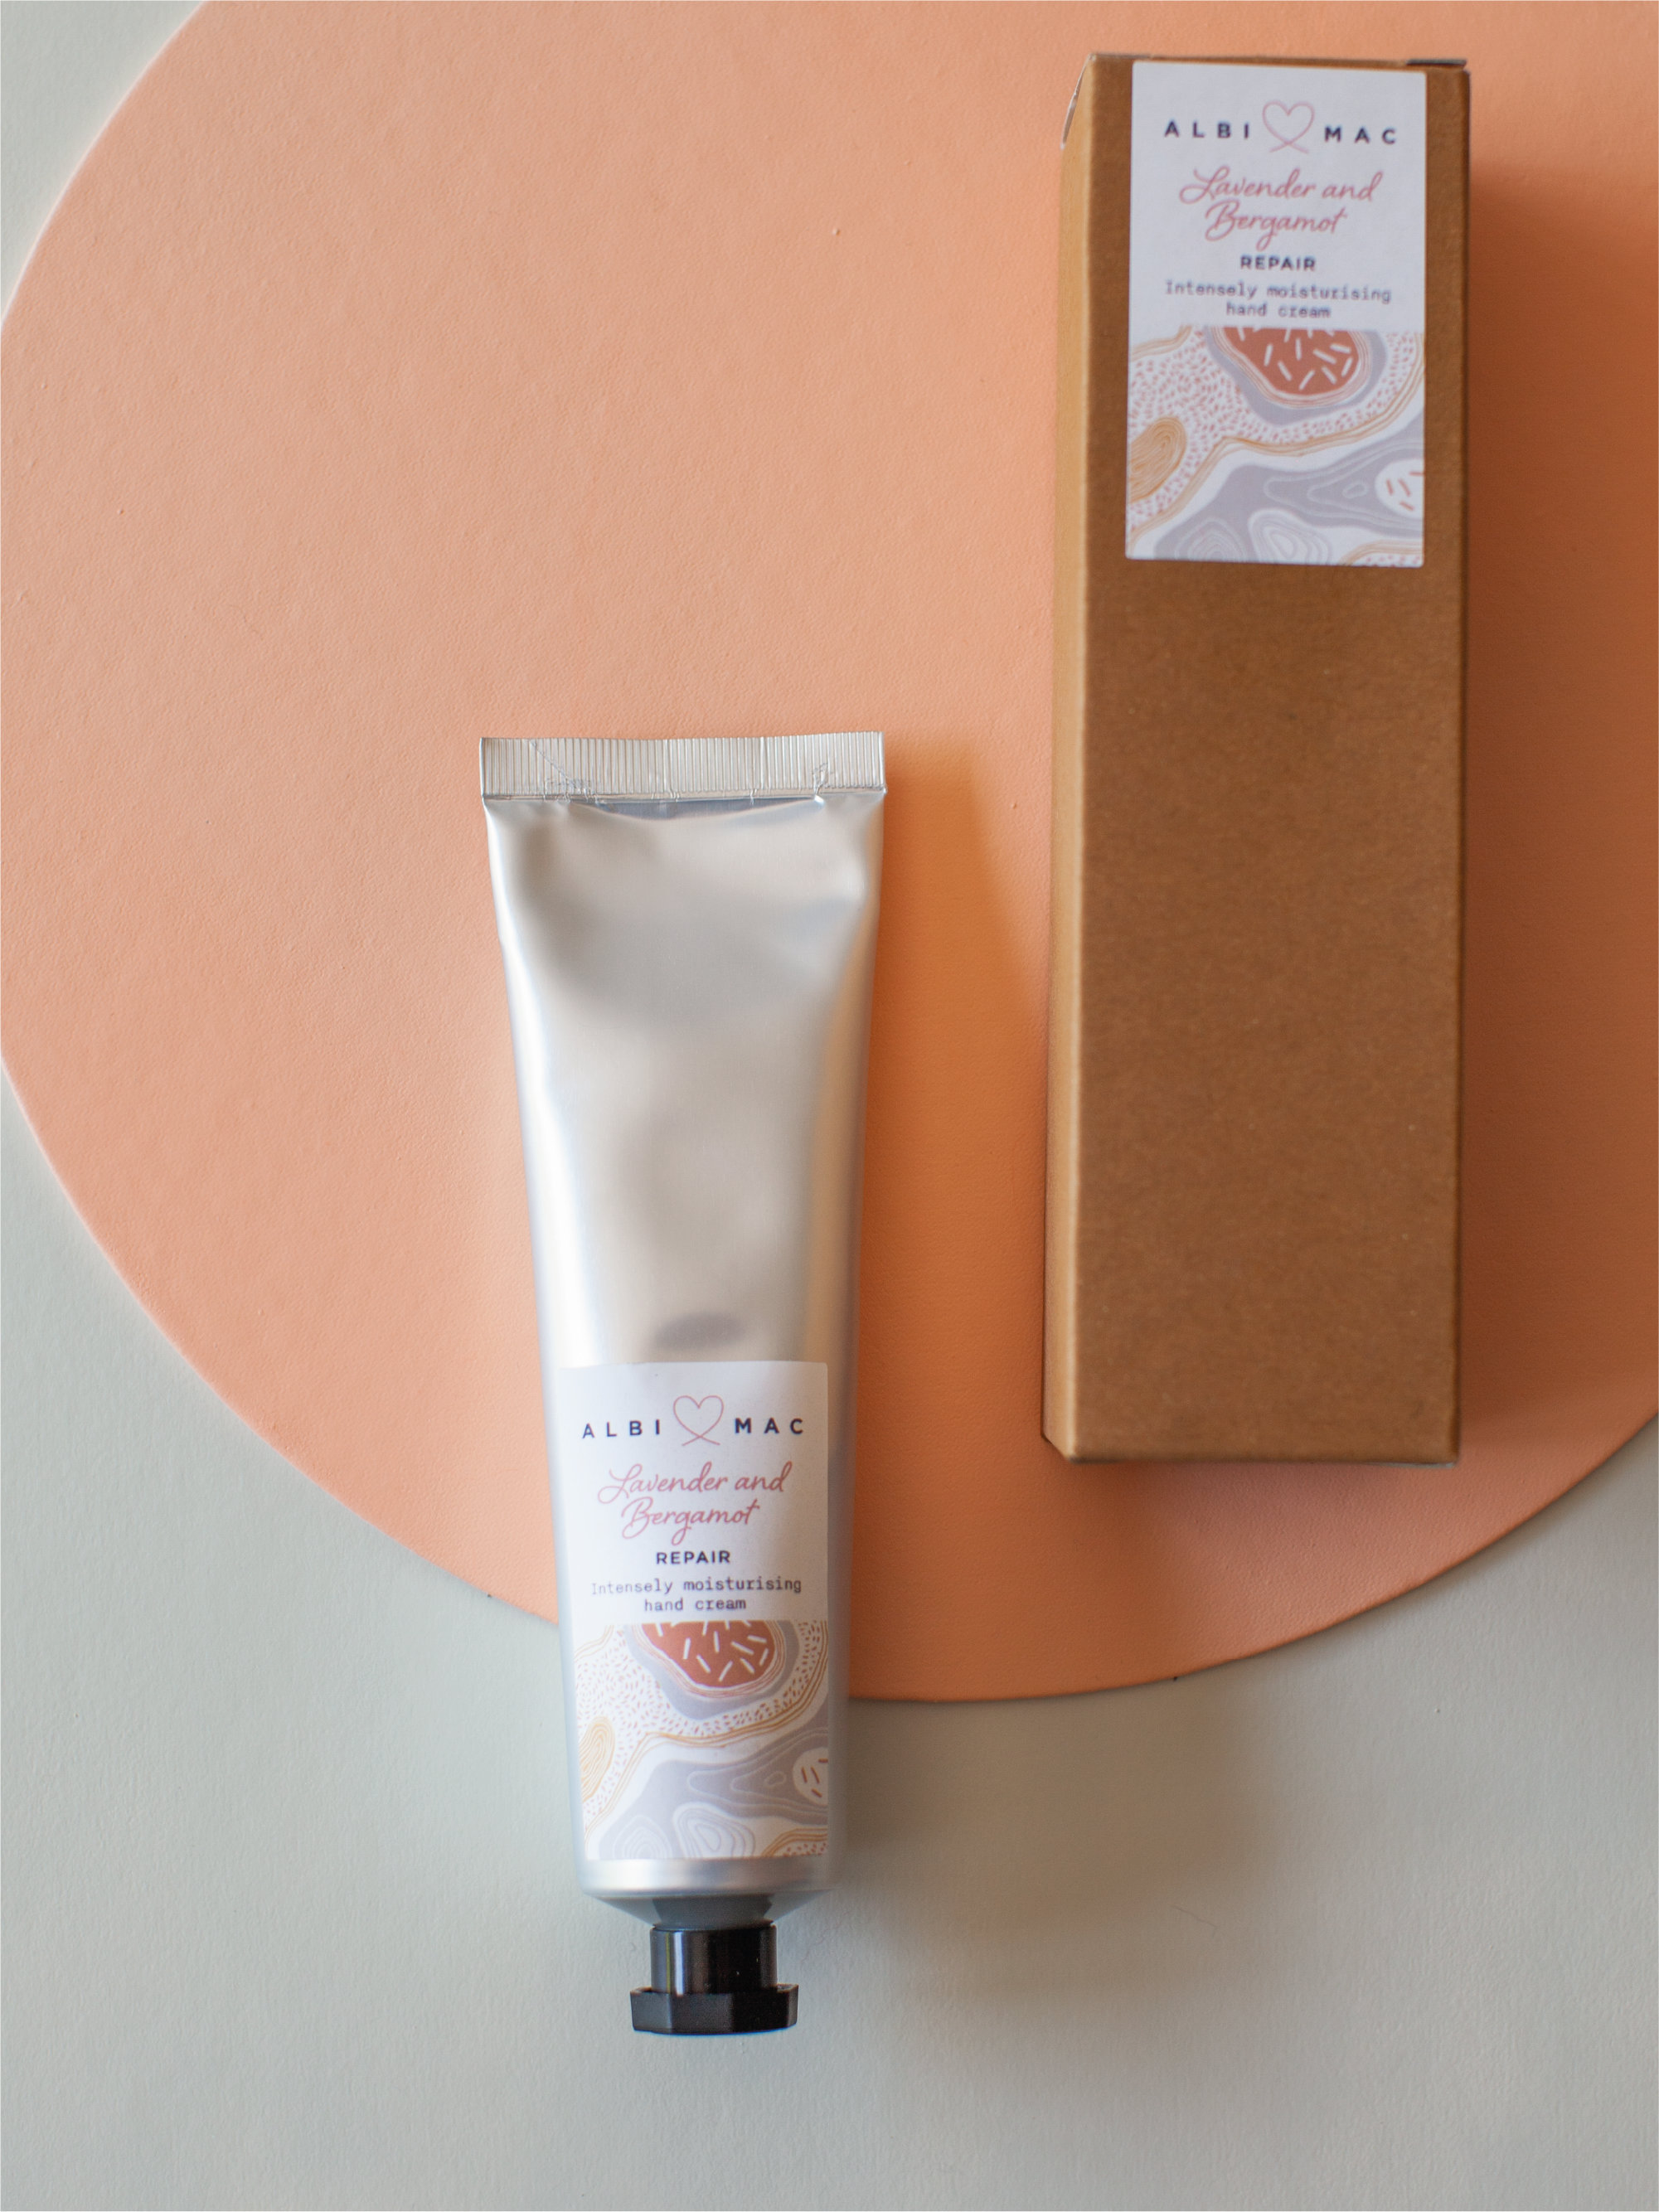 Albi and Mac hand cream that comes in a £50 gift box